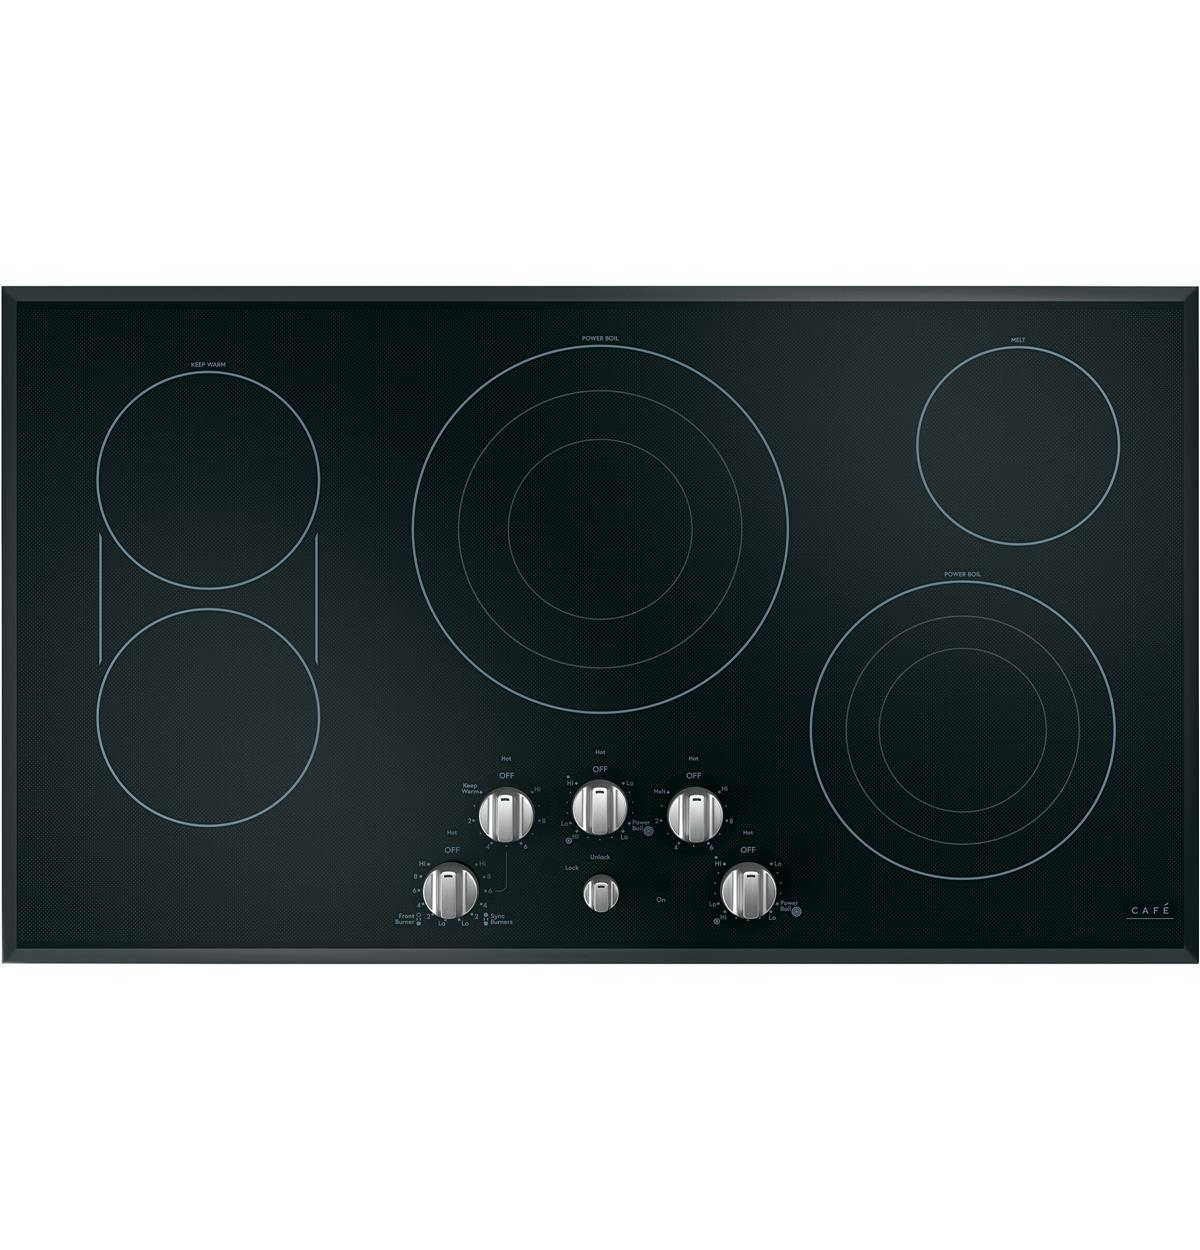 "Café™ 36"" Built-In Knob Control Electric Cooktop"